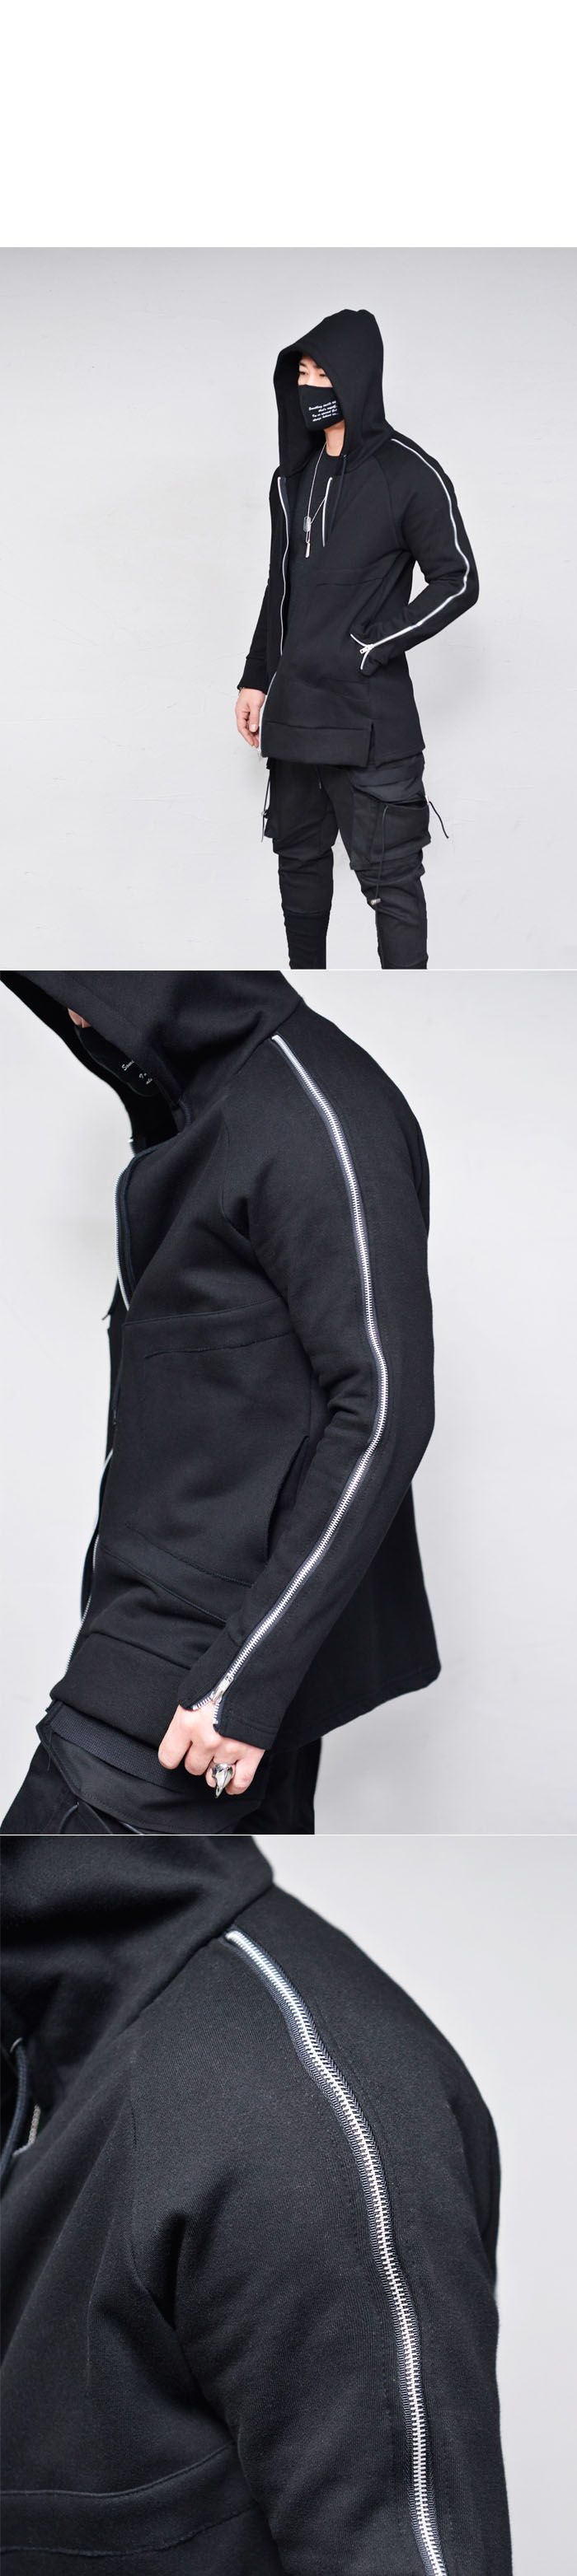 Power Zipper Hood Zipup-Hoodie 232 - GUYLOOK